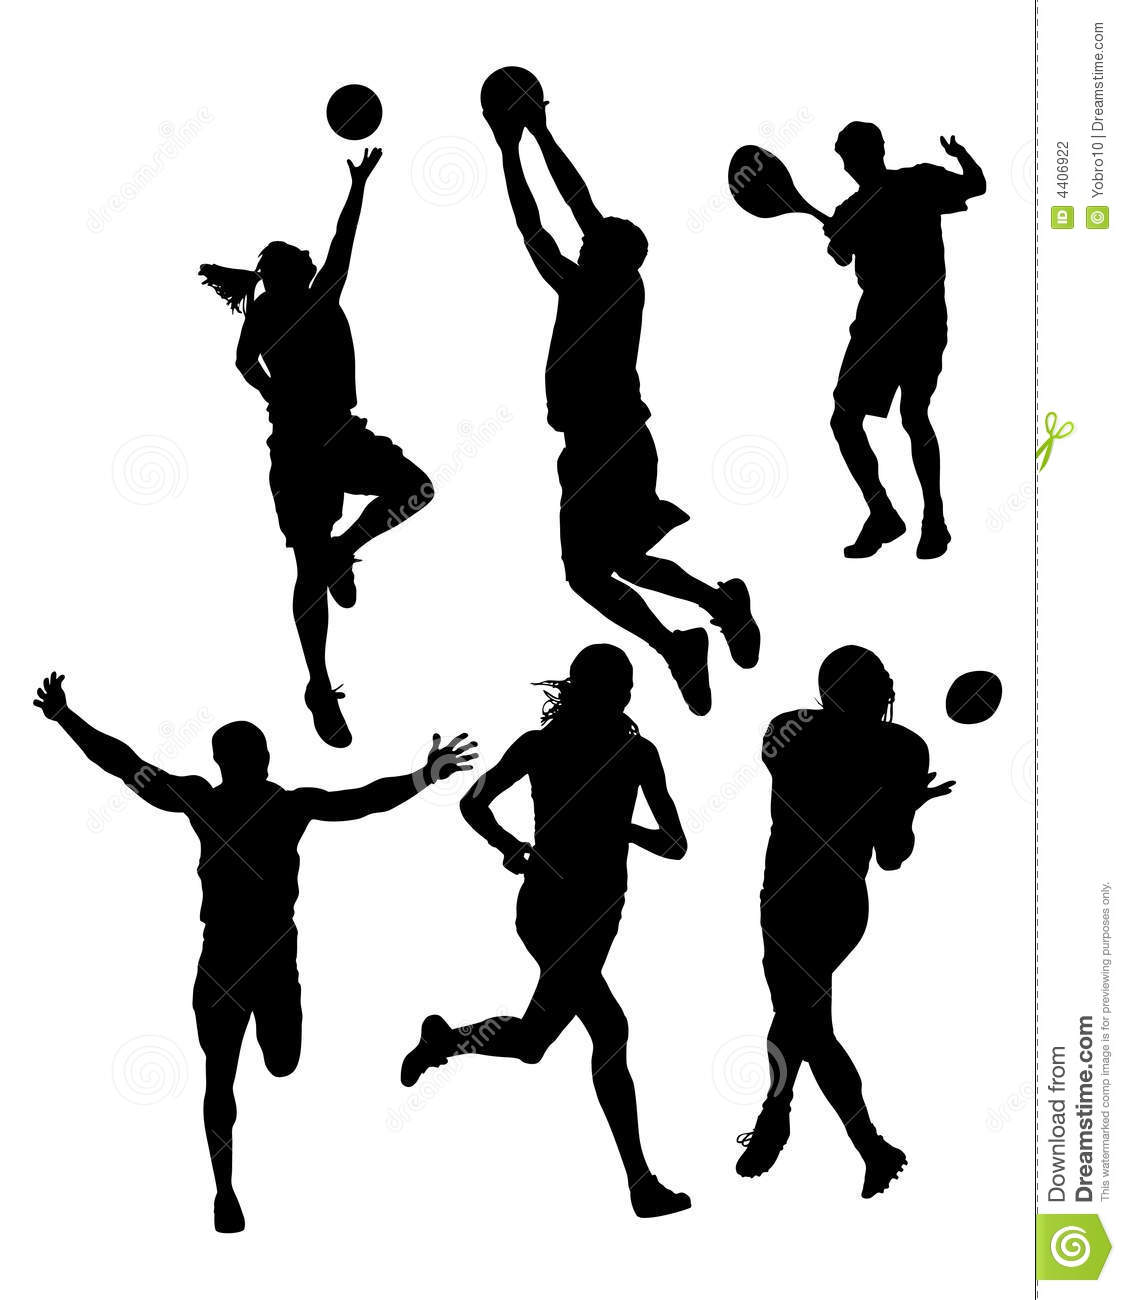 ... sports (football, track and field, cross country, tennis, basketball